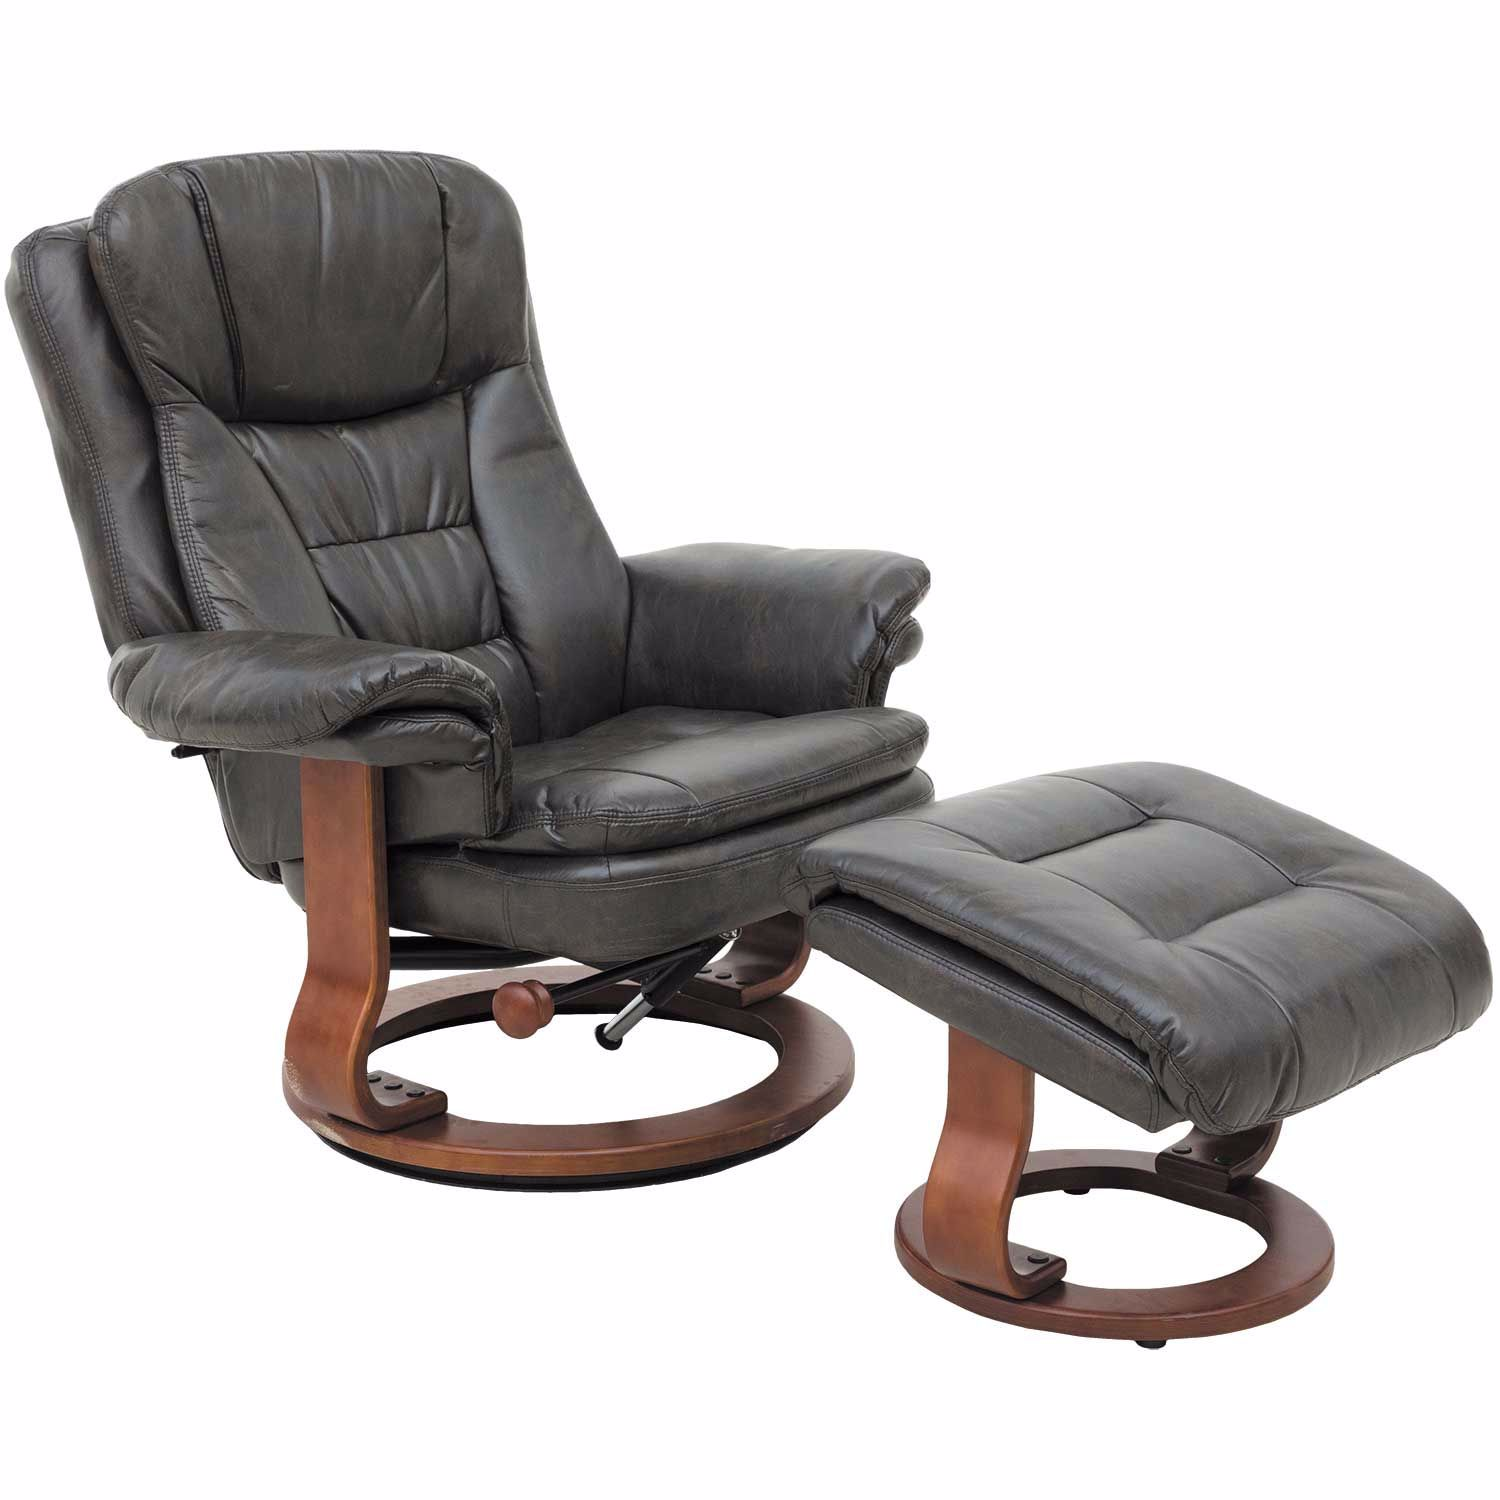 Picture of Duke Stress Free Recliner with Ottoman